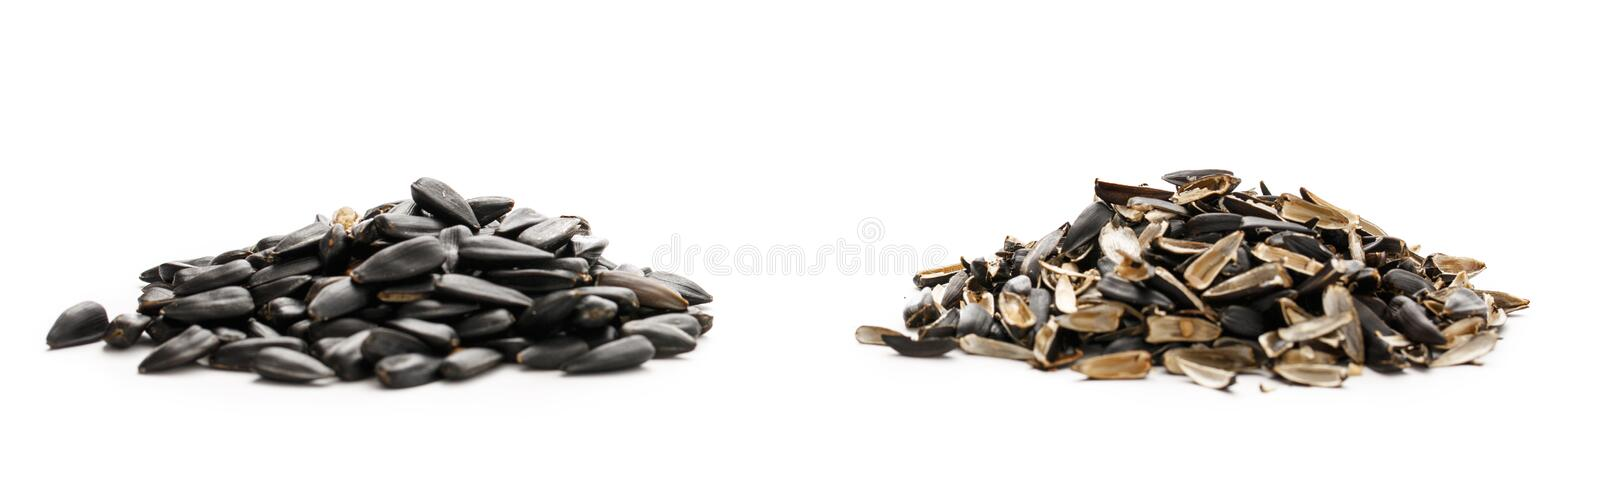 Sunflower seeds and husk. S on white background stock images